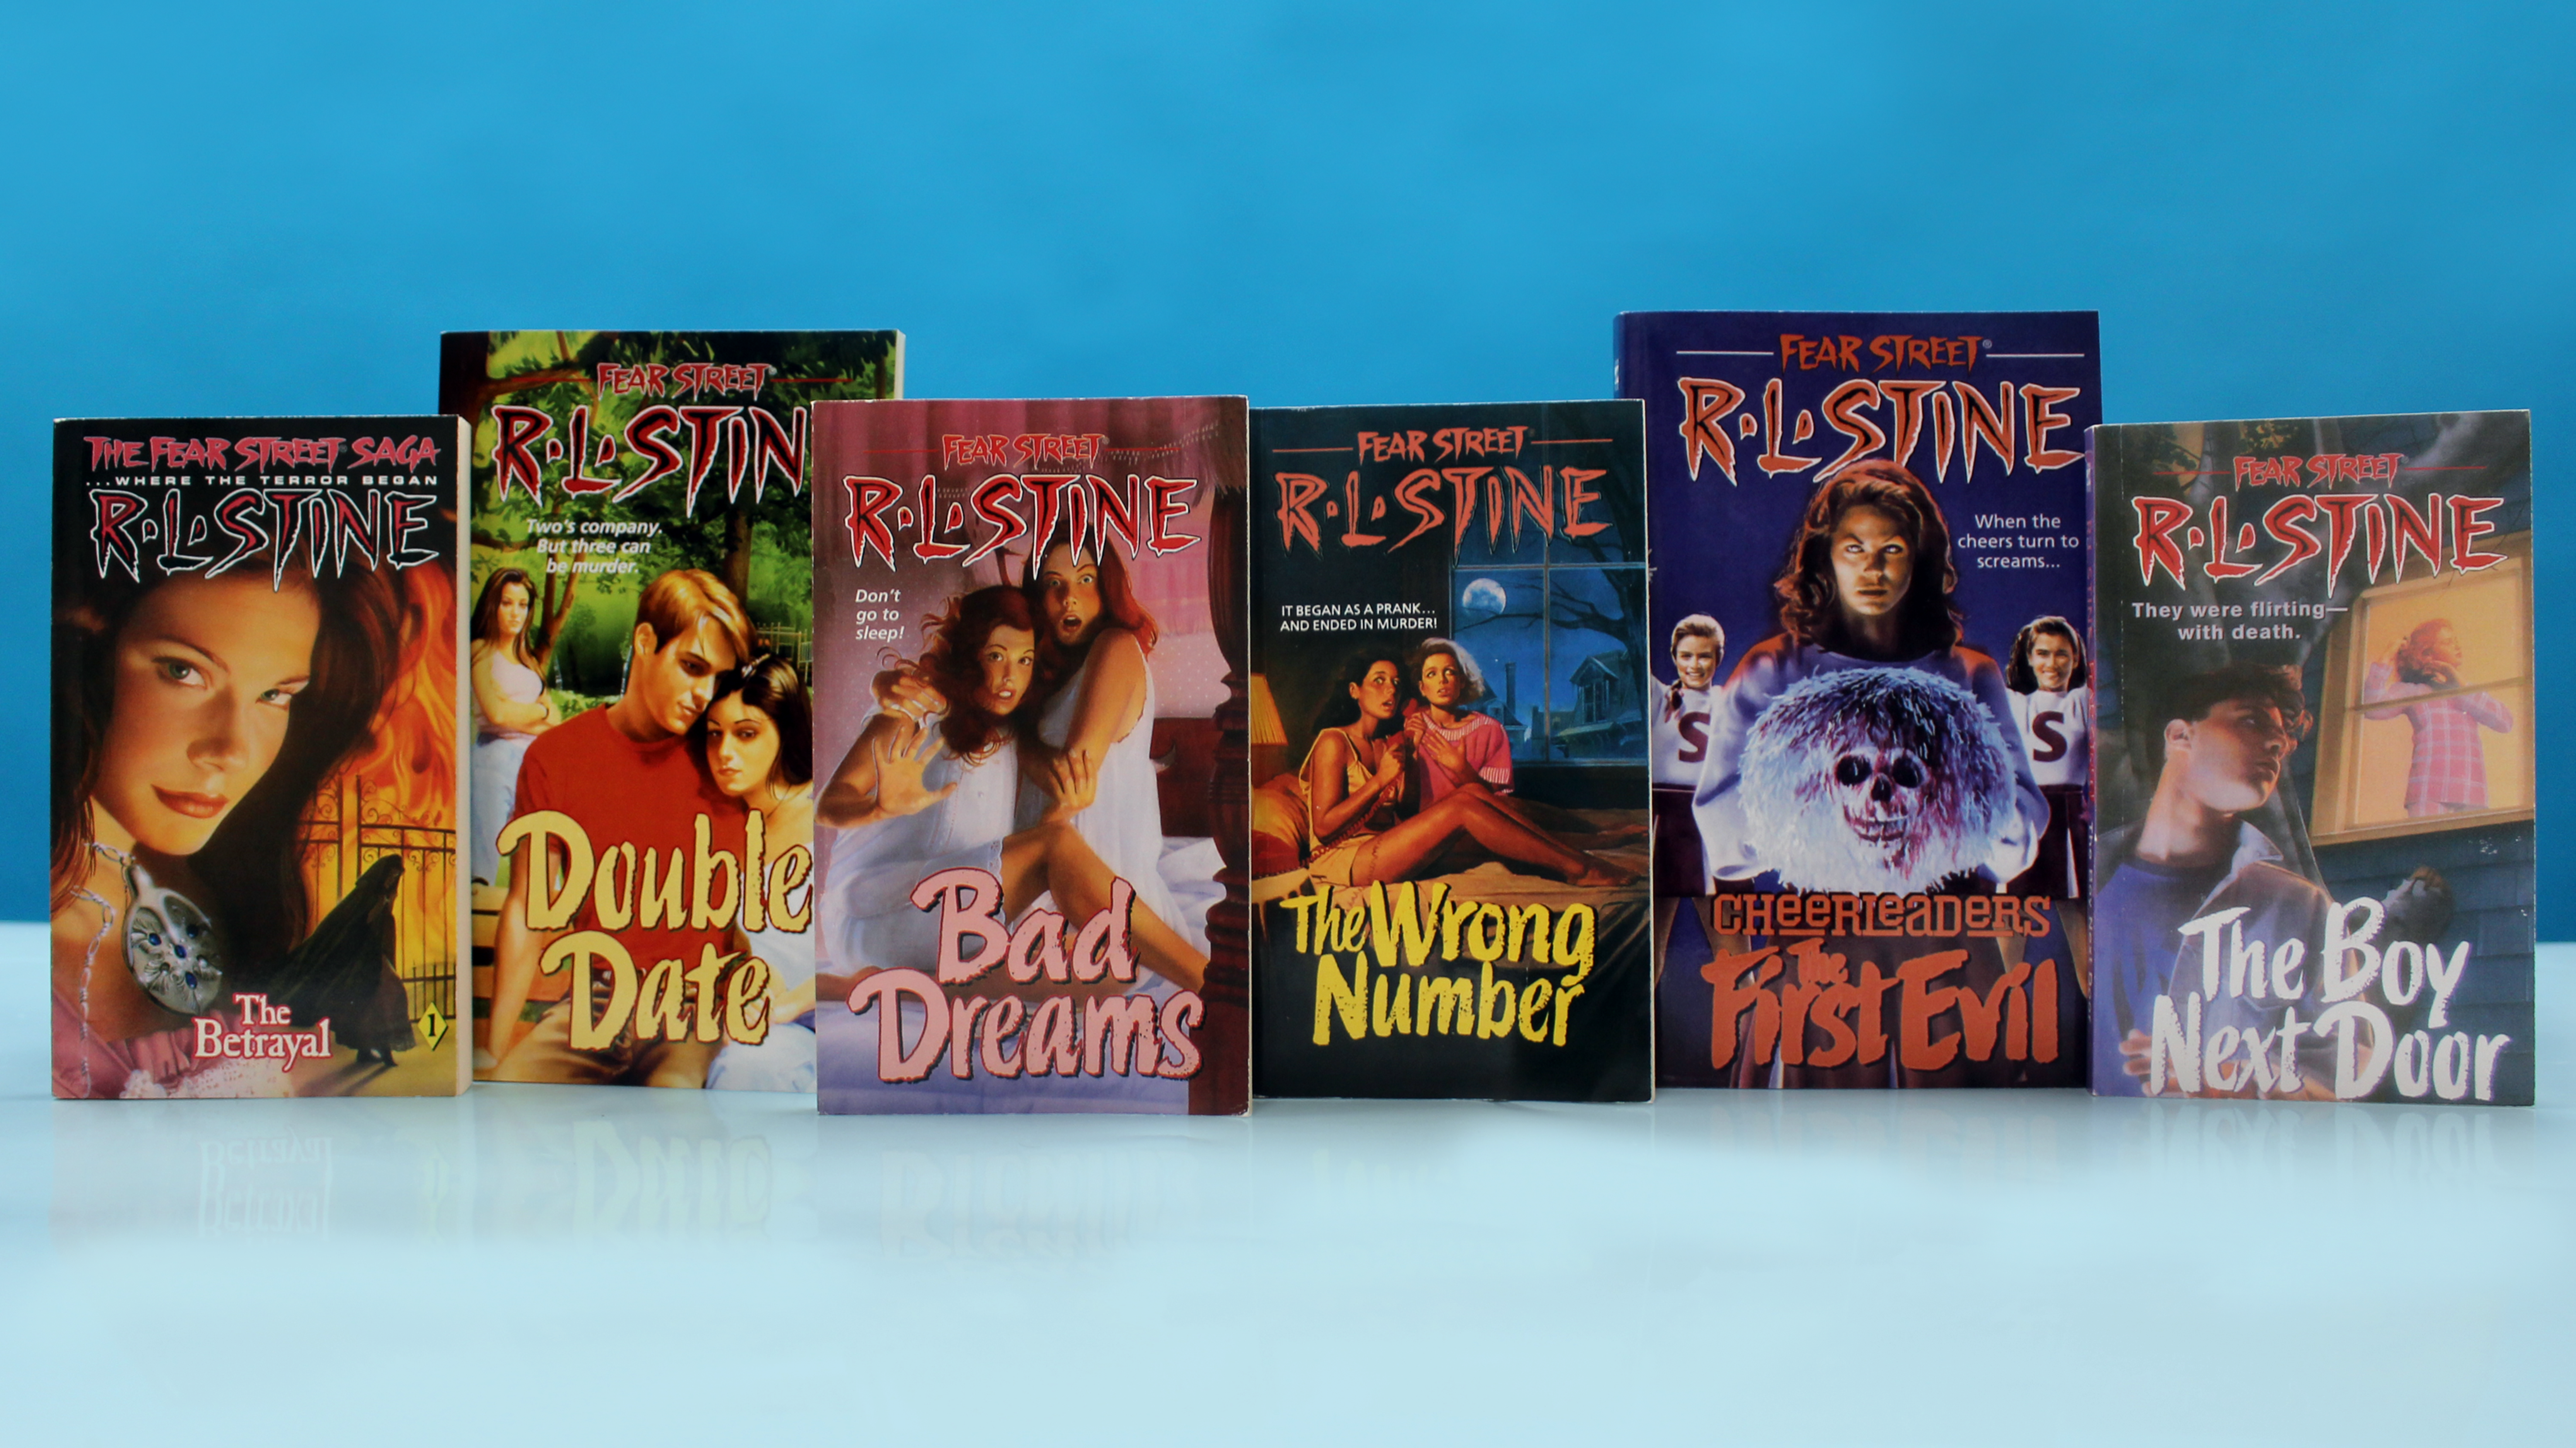 14 Freaky Facts About R.L. Stine's Fear Street Books